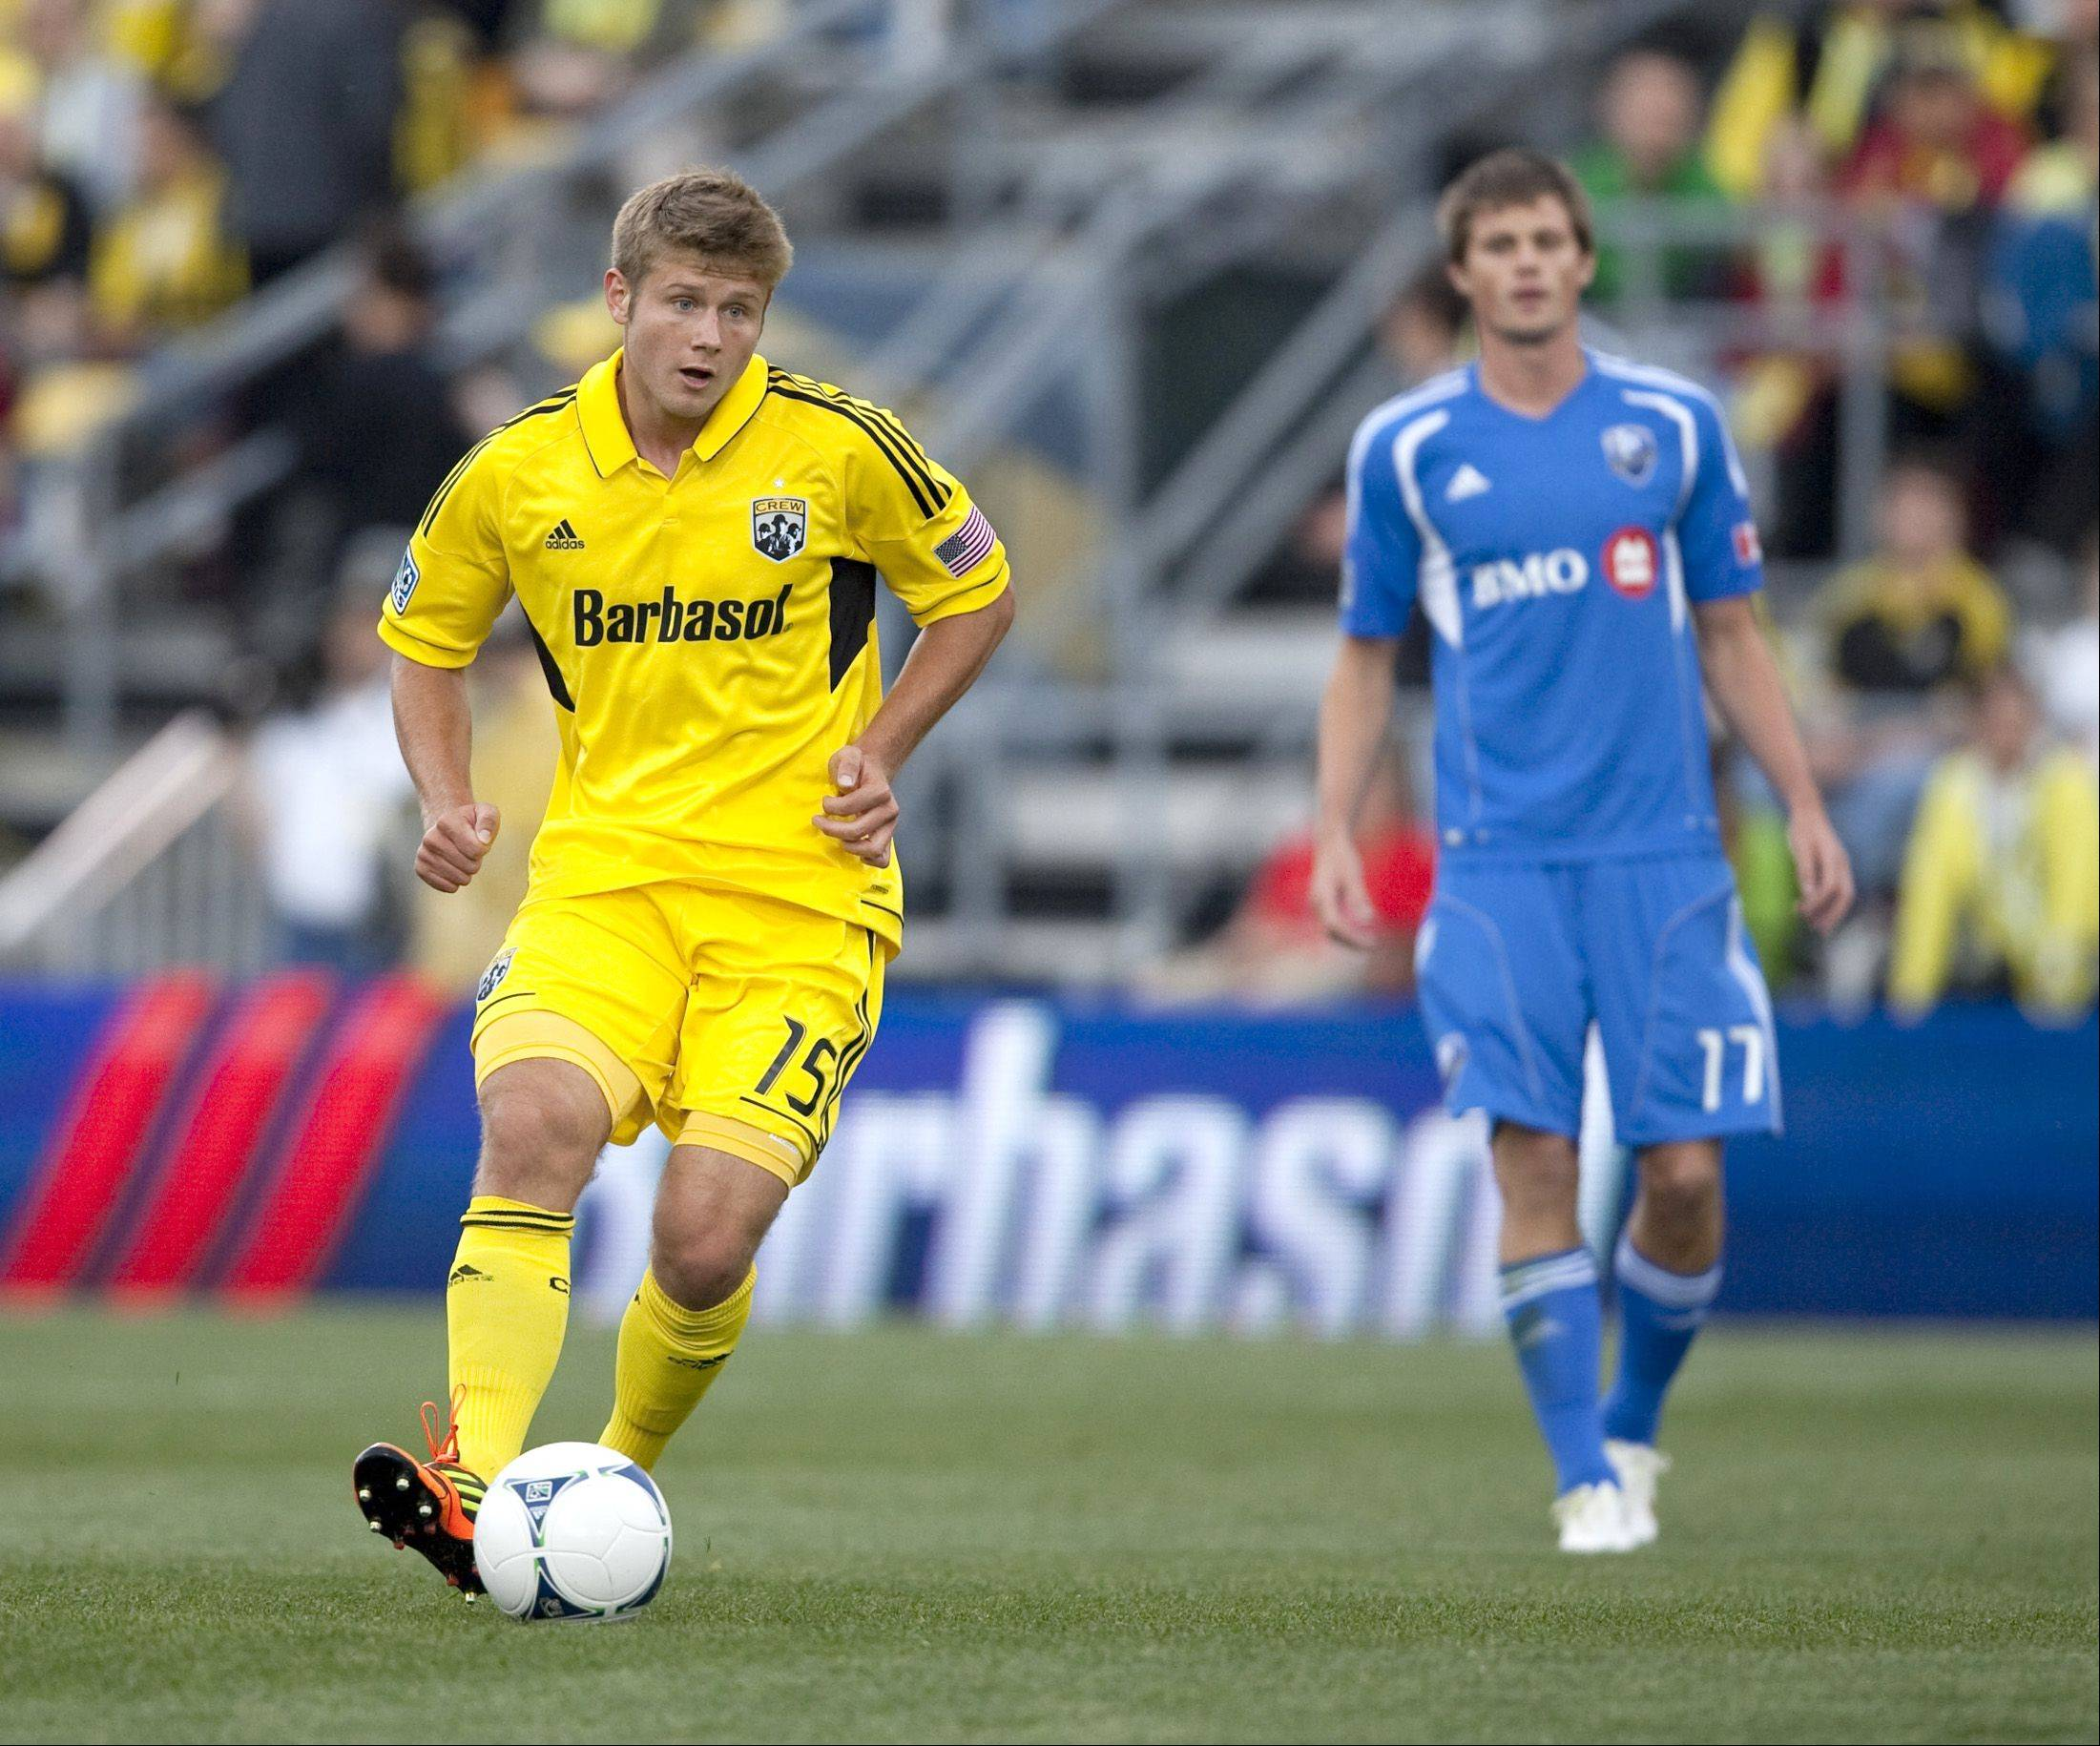 A coroner has ruled that Columbus Crew rookie midfielder Kirk Urso of Lombard, left, died Aug. 5 of heart failure caused by arrhythmogenic right ventricular cardiomyopathy. A former star at the University of North Carolina, Urso was 22 at the time of his death.